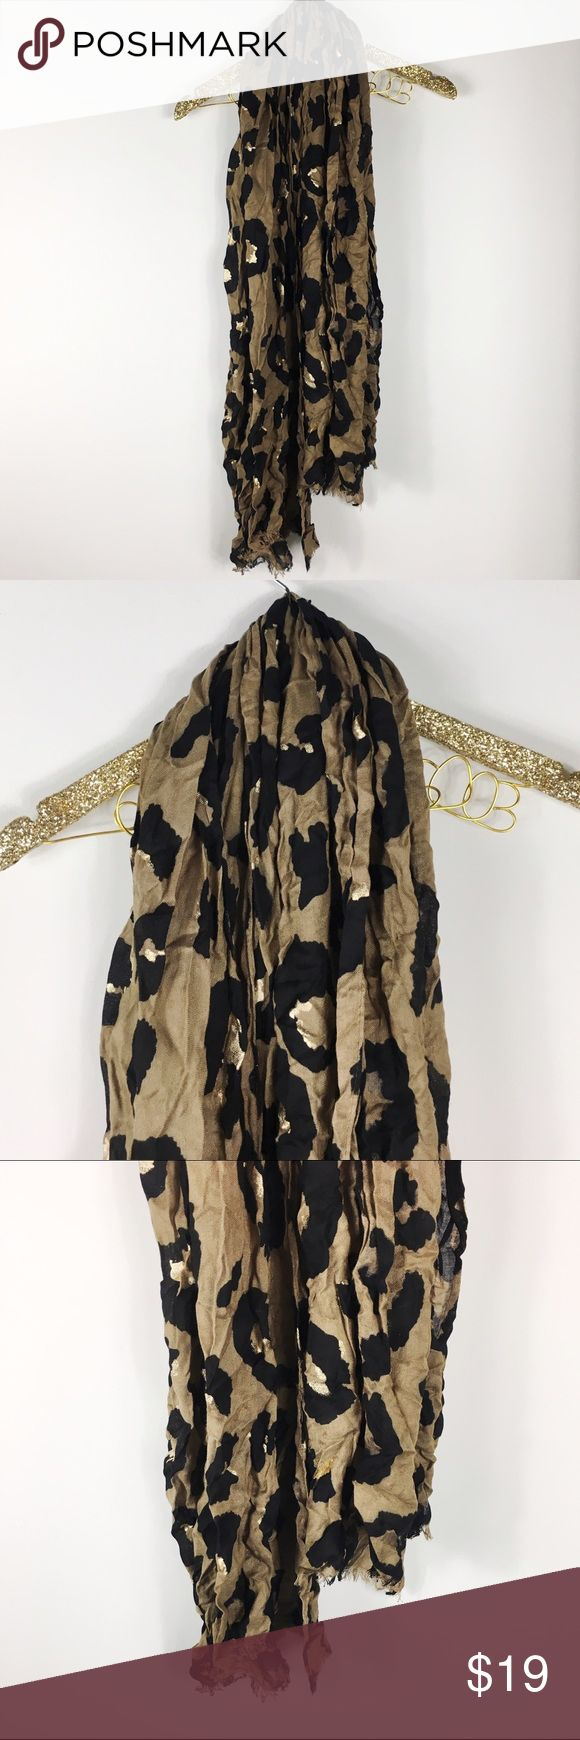 Express Leopard Print Scarf Express tan leopard print scarf. Excellent pre-owned condition. No modeling/trades. Express Accessories Scarves & Wraps